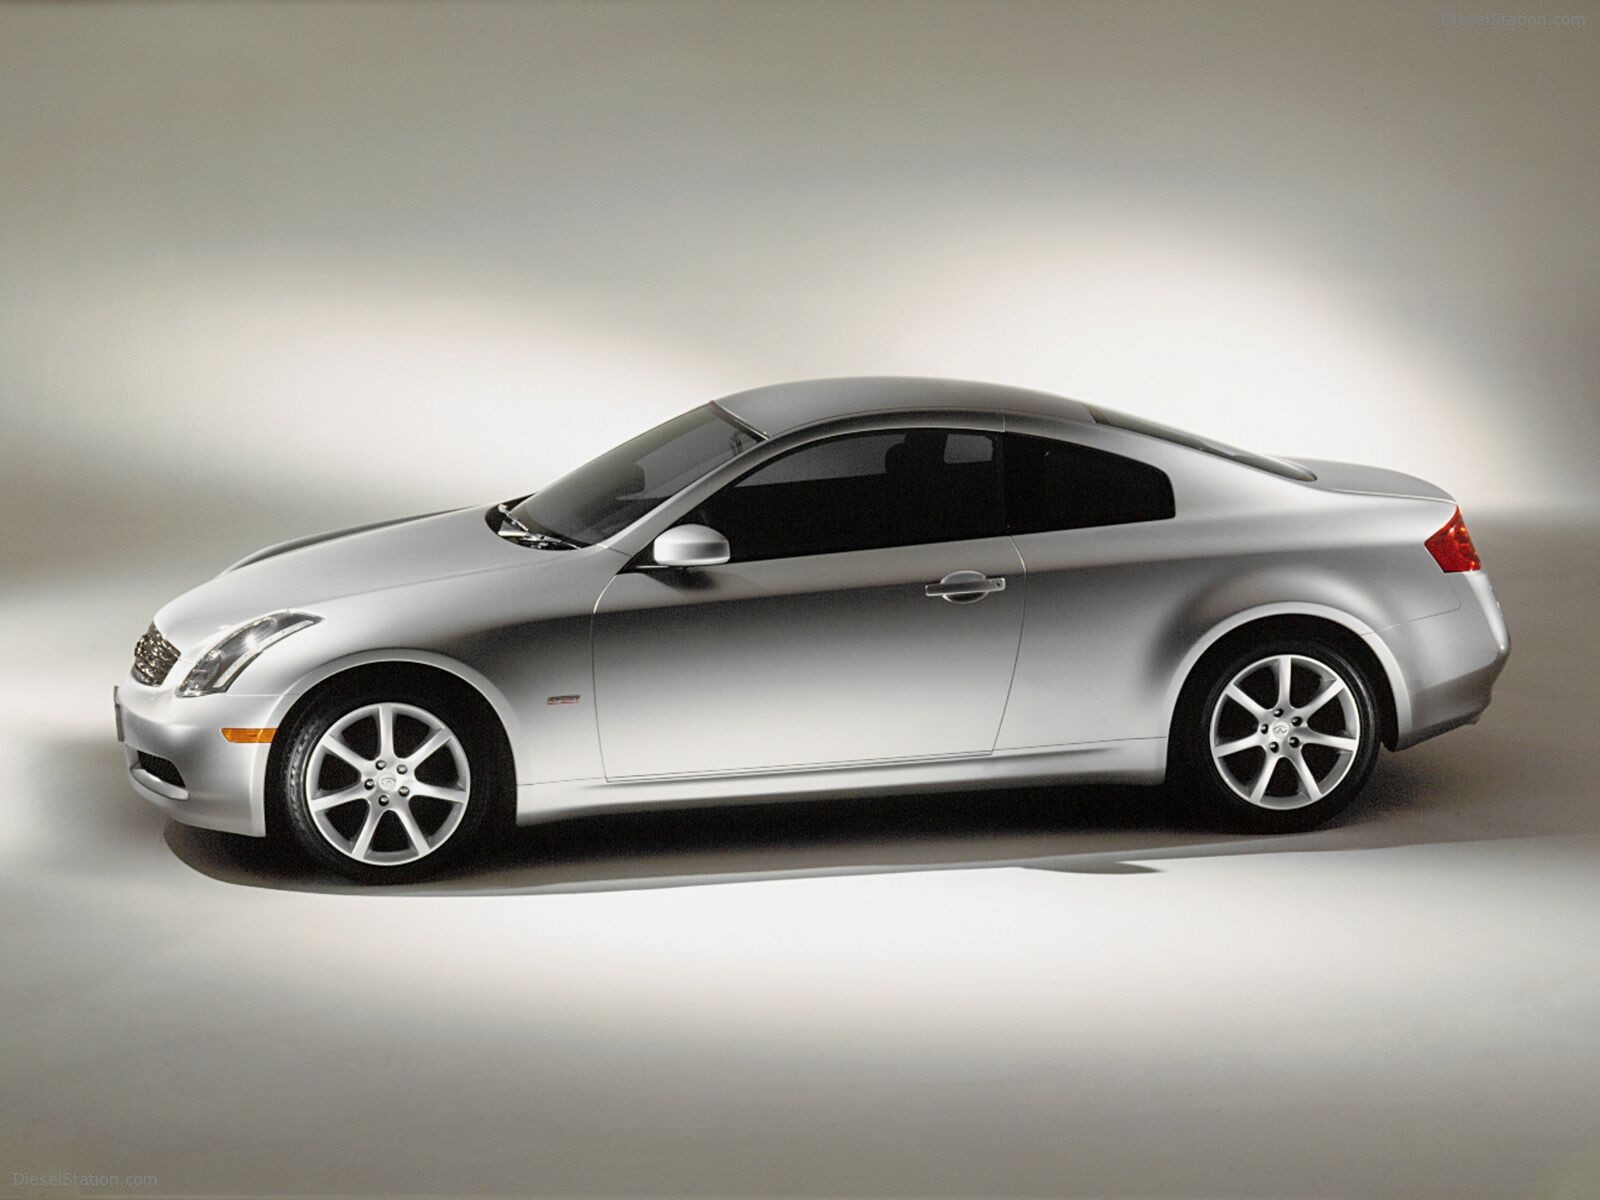 Nissan G35 Coupe Exotic Car Wallpapers 002 of 23 Diesel Station 1600x1200